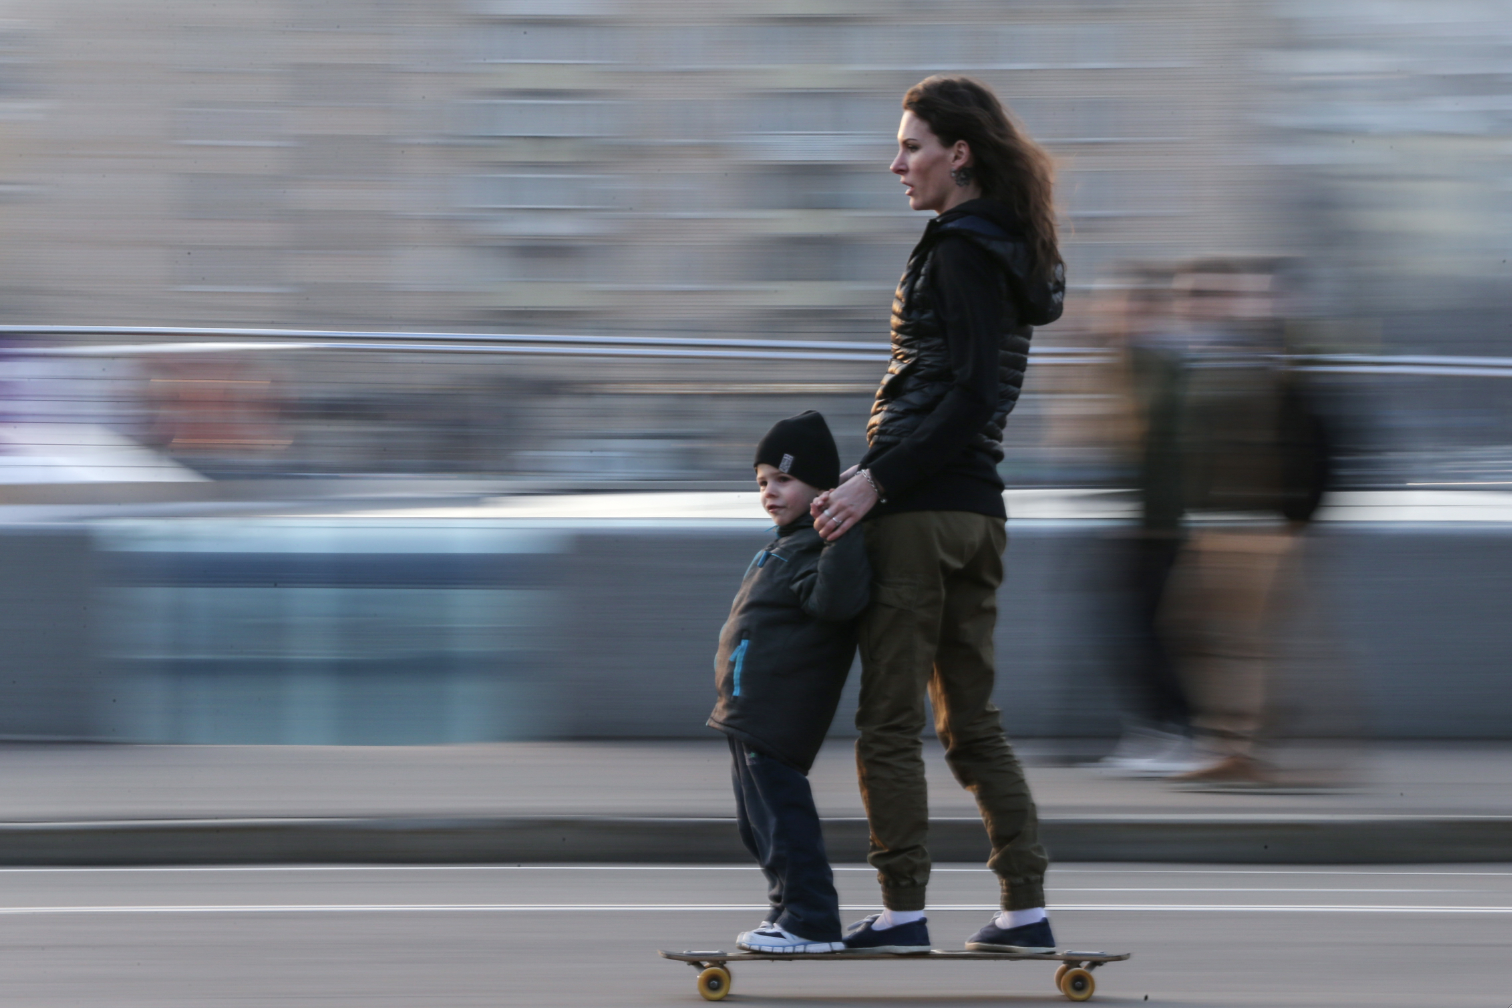 A woman and a kid skateboarding on Pushkinskaya Embankment in Moscow.